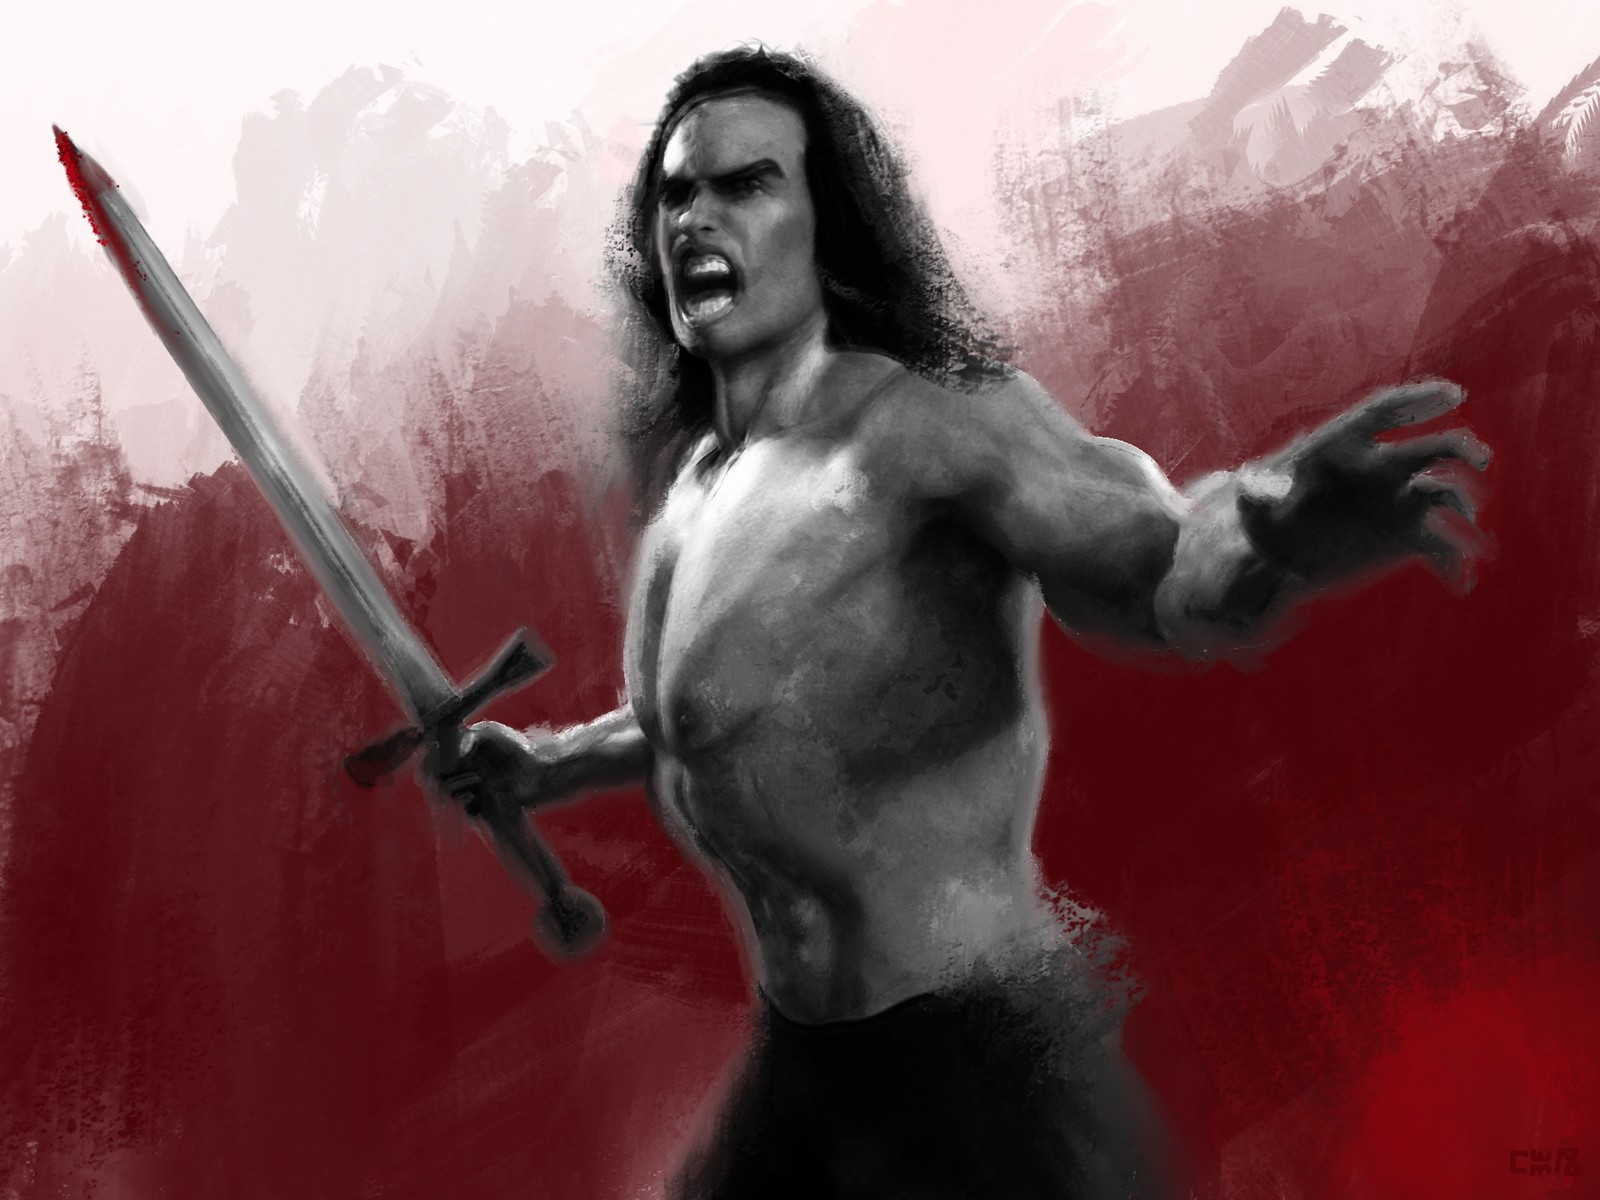 Conan The Barbarian - Tribute